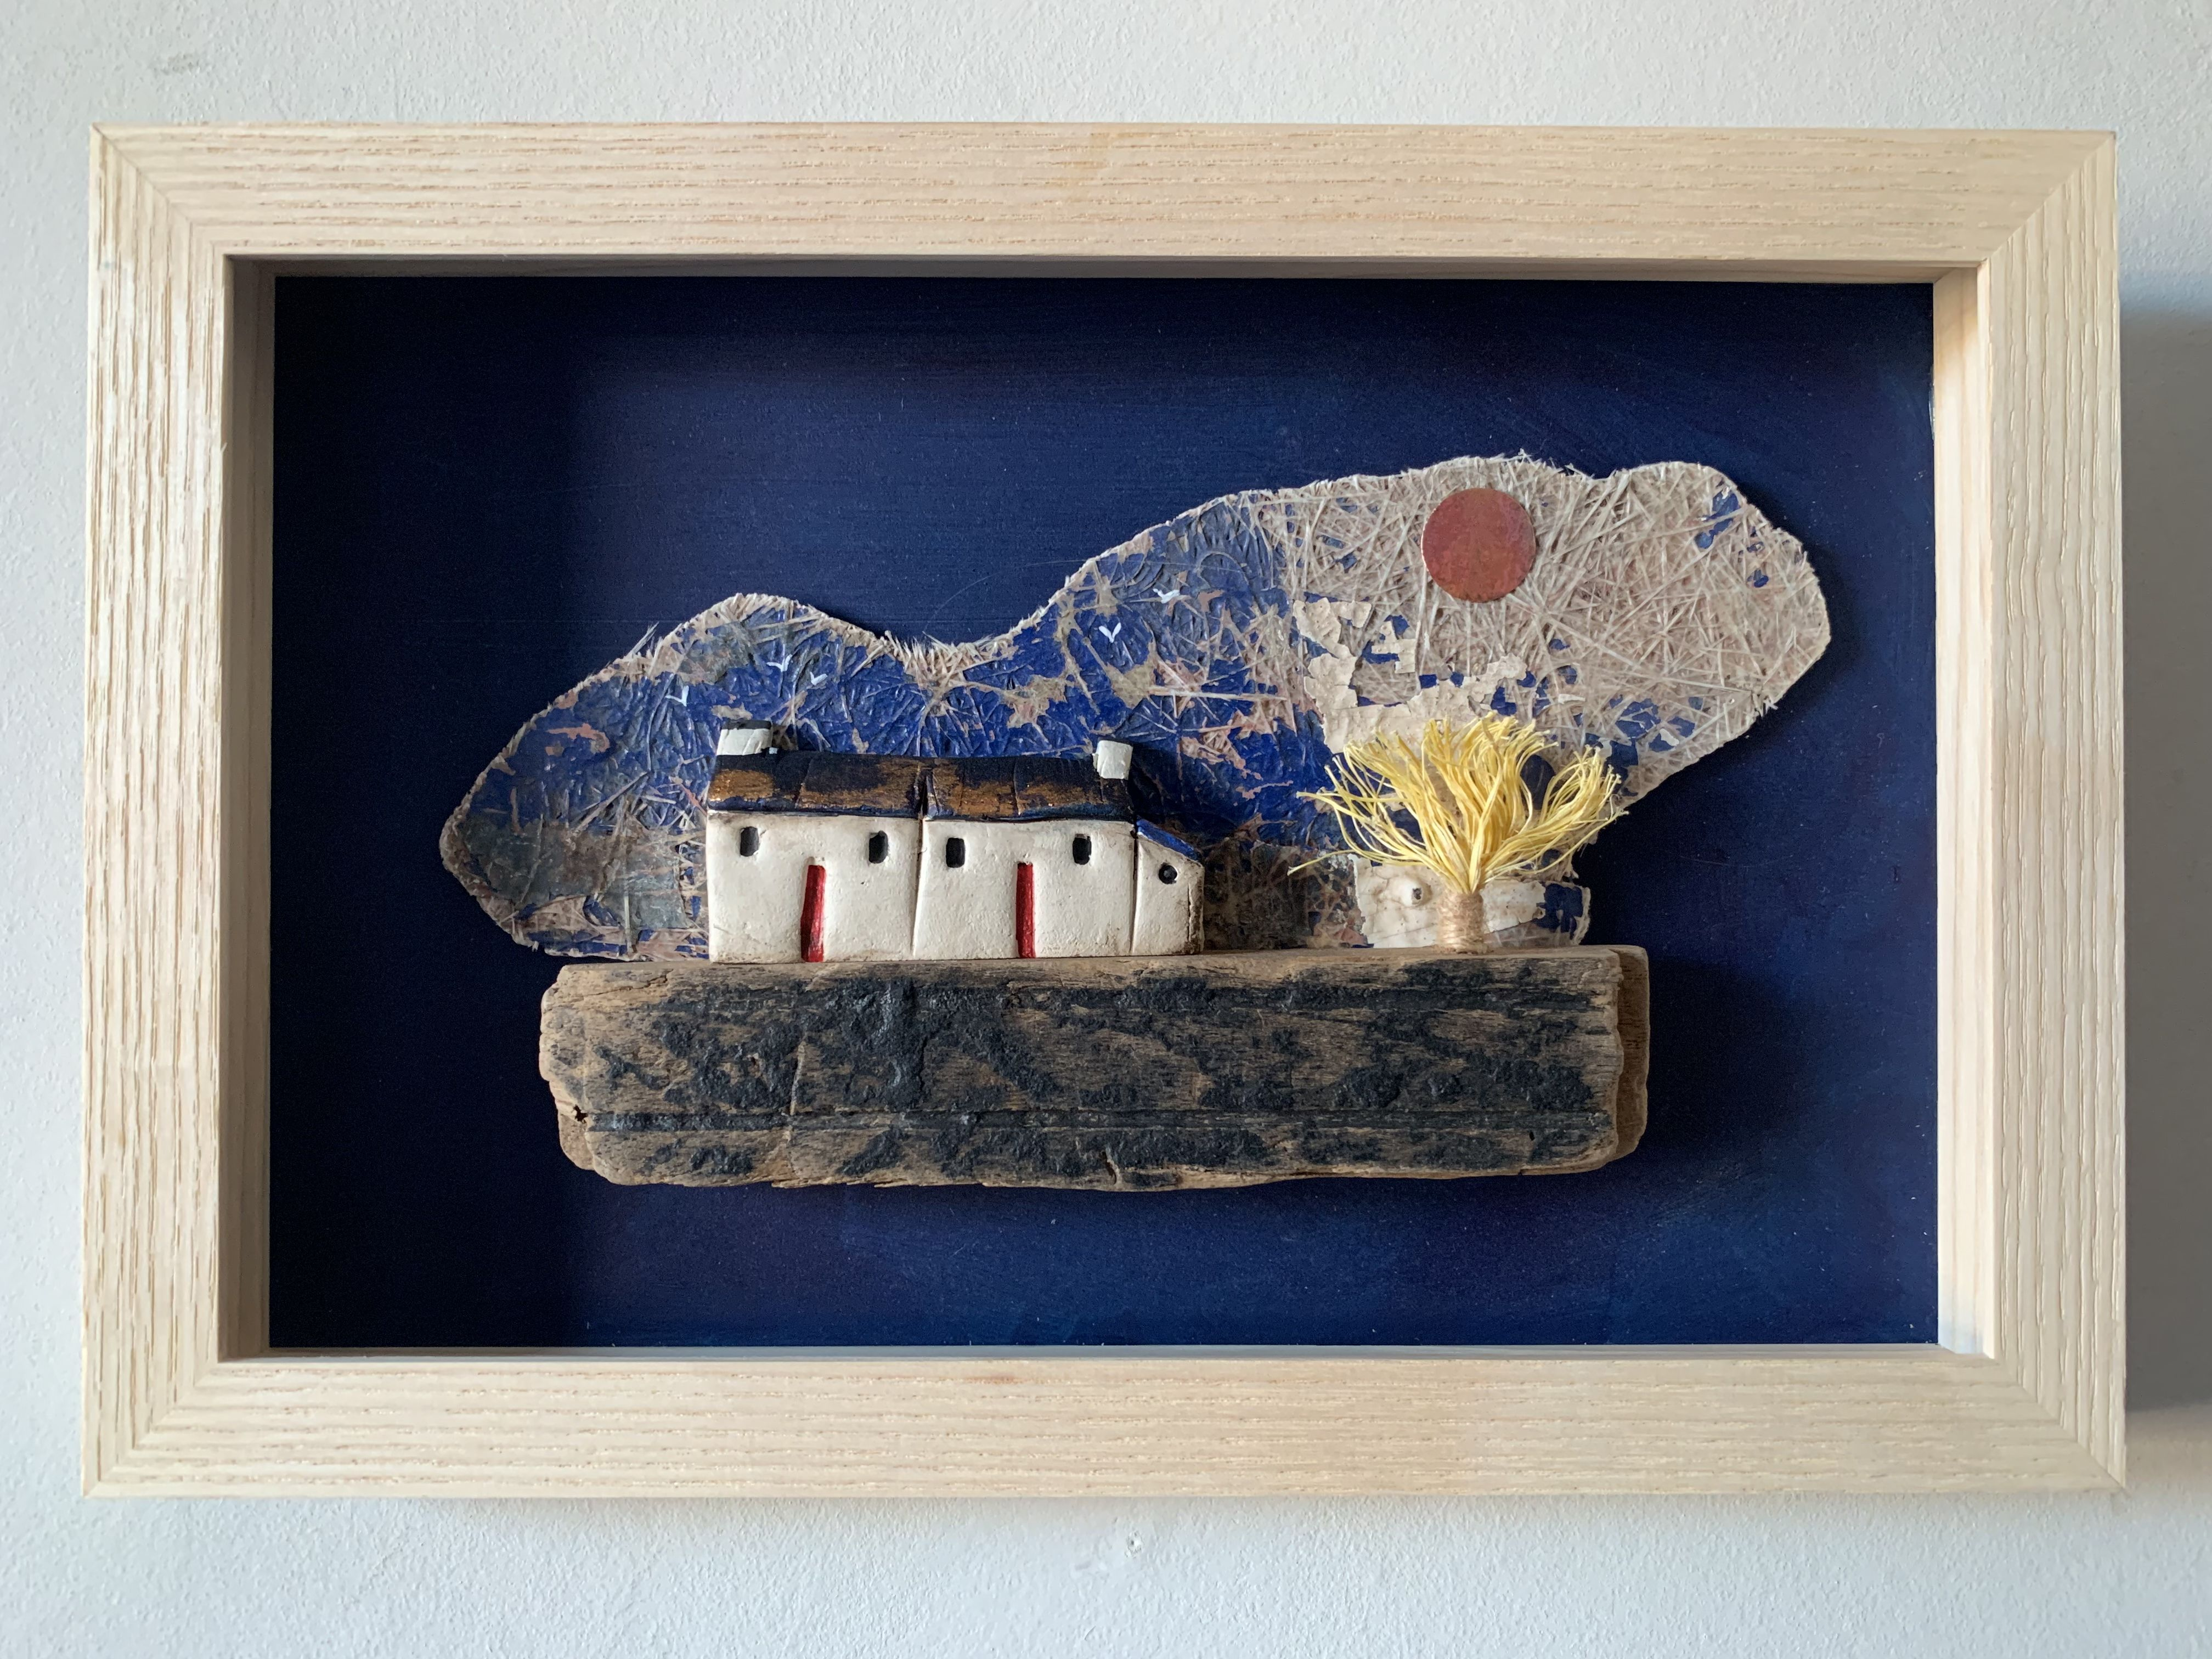 Pin By Aylin Ege On Little Houses In 2020 Little Houses Mini House Shadow Boxes